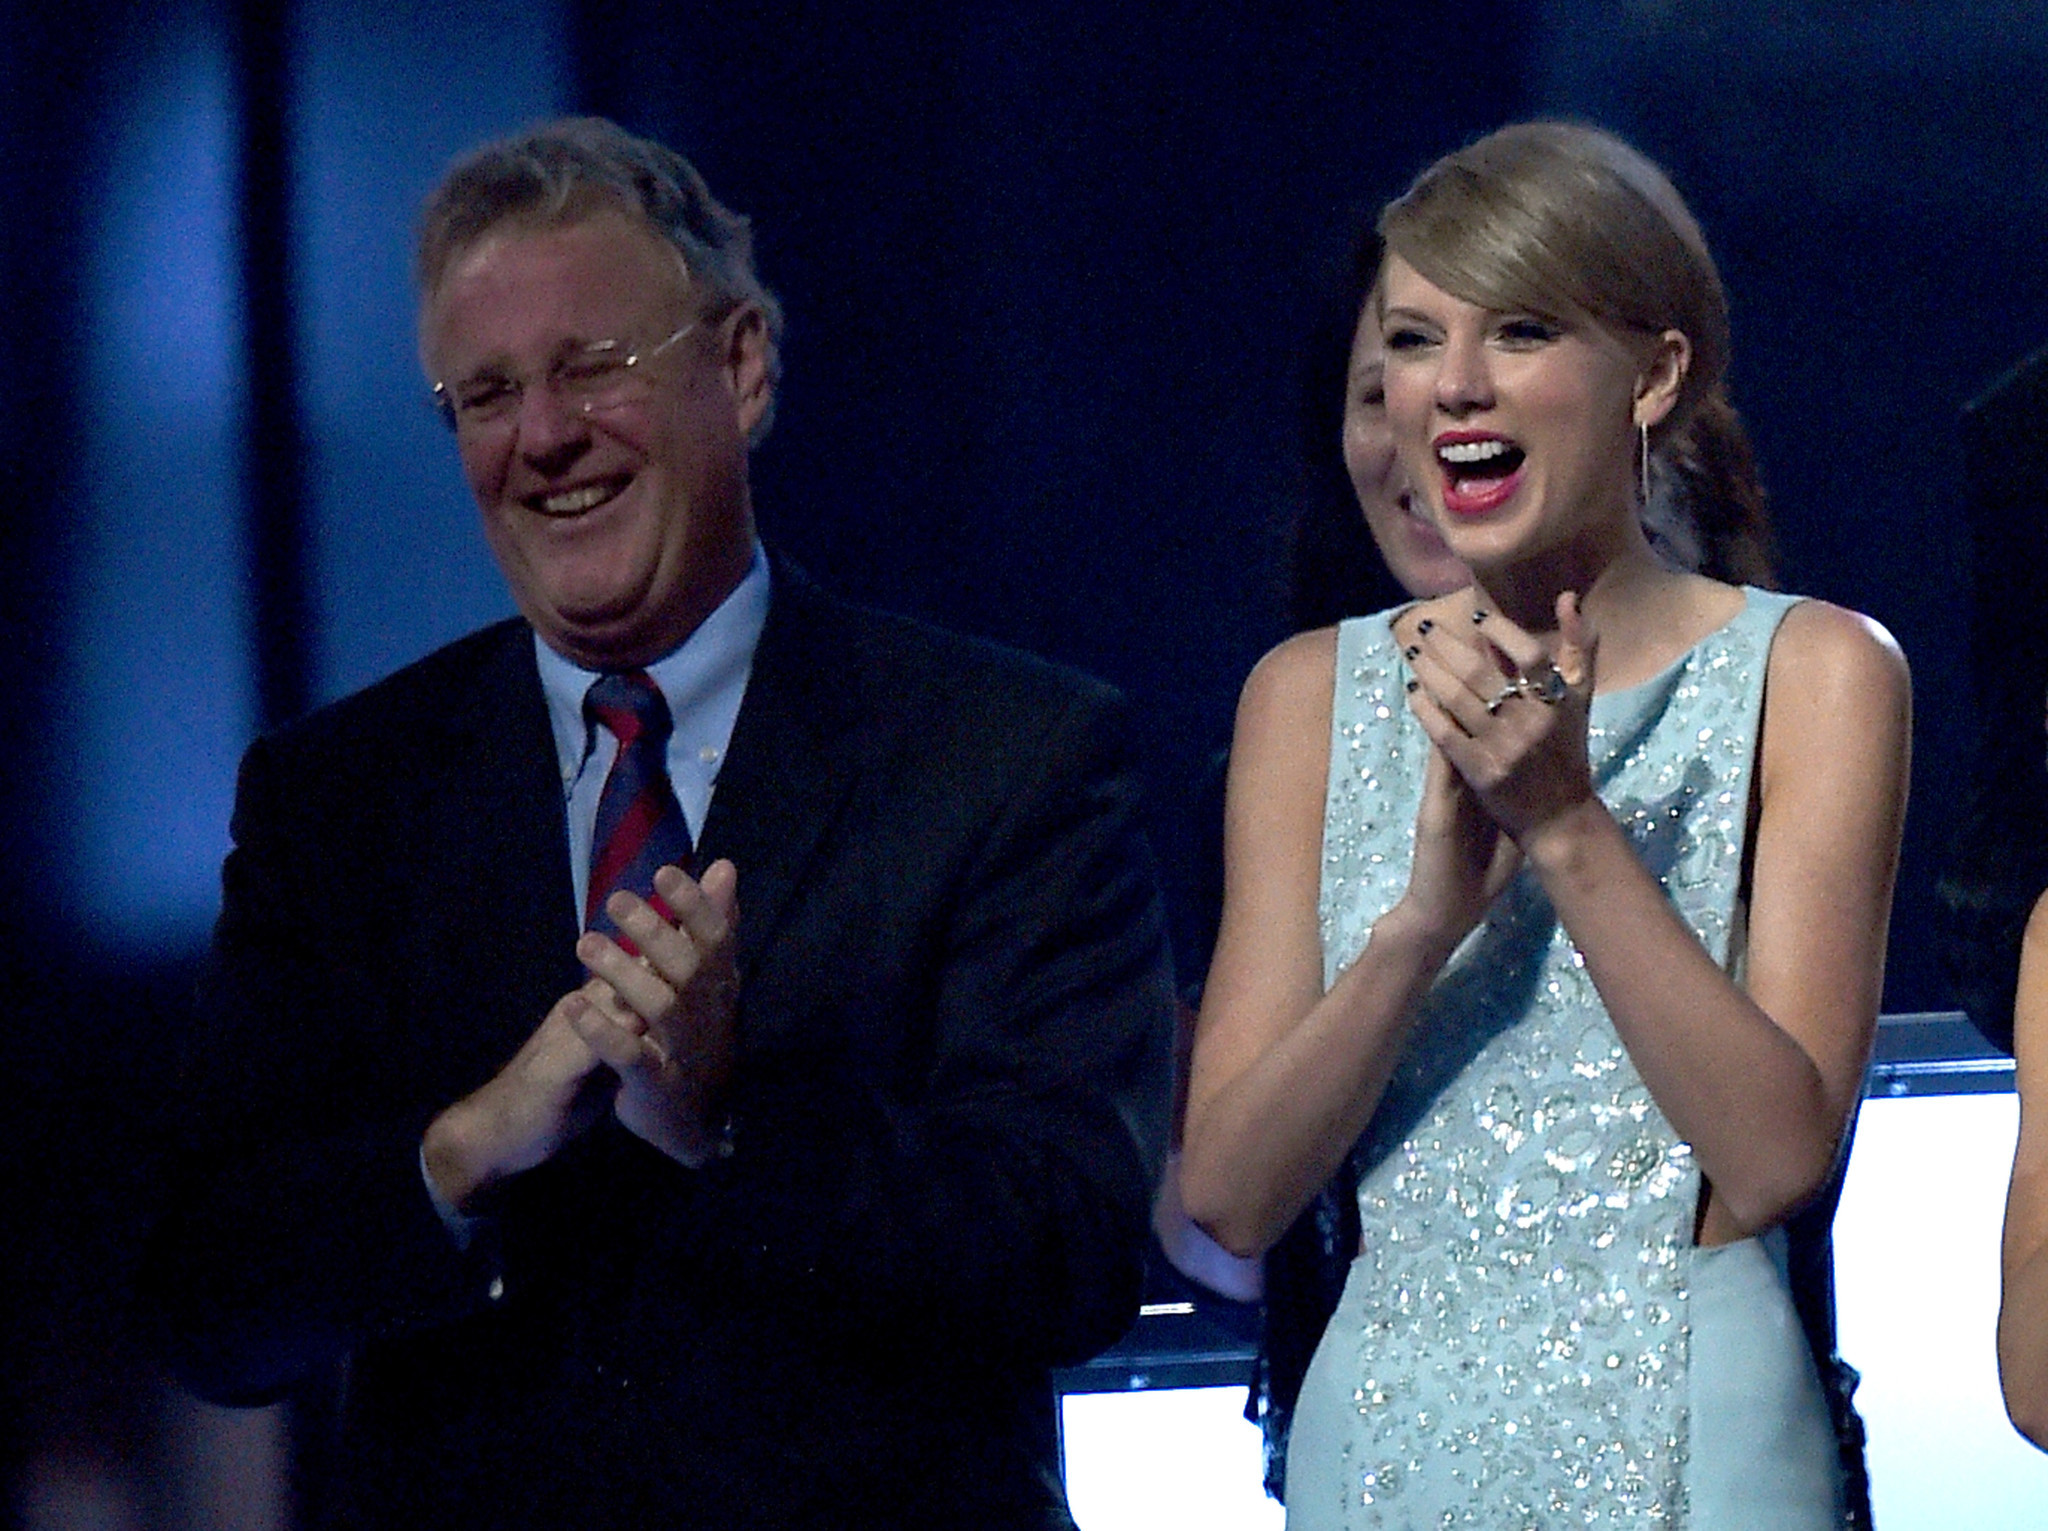 Taylor Swift's dad tussles with burglar in $4 million penthouse